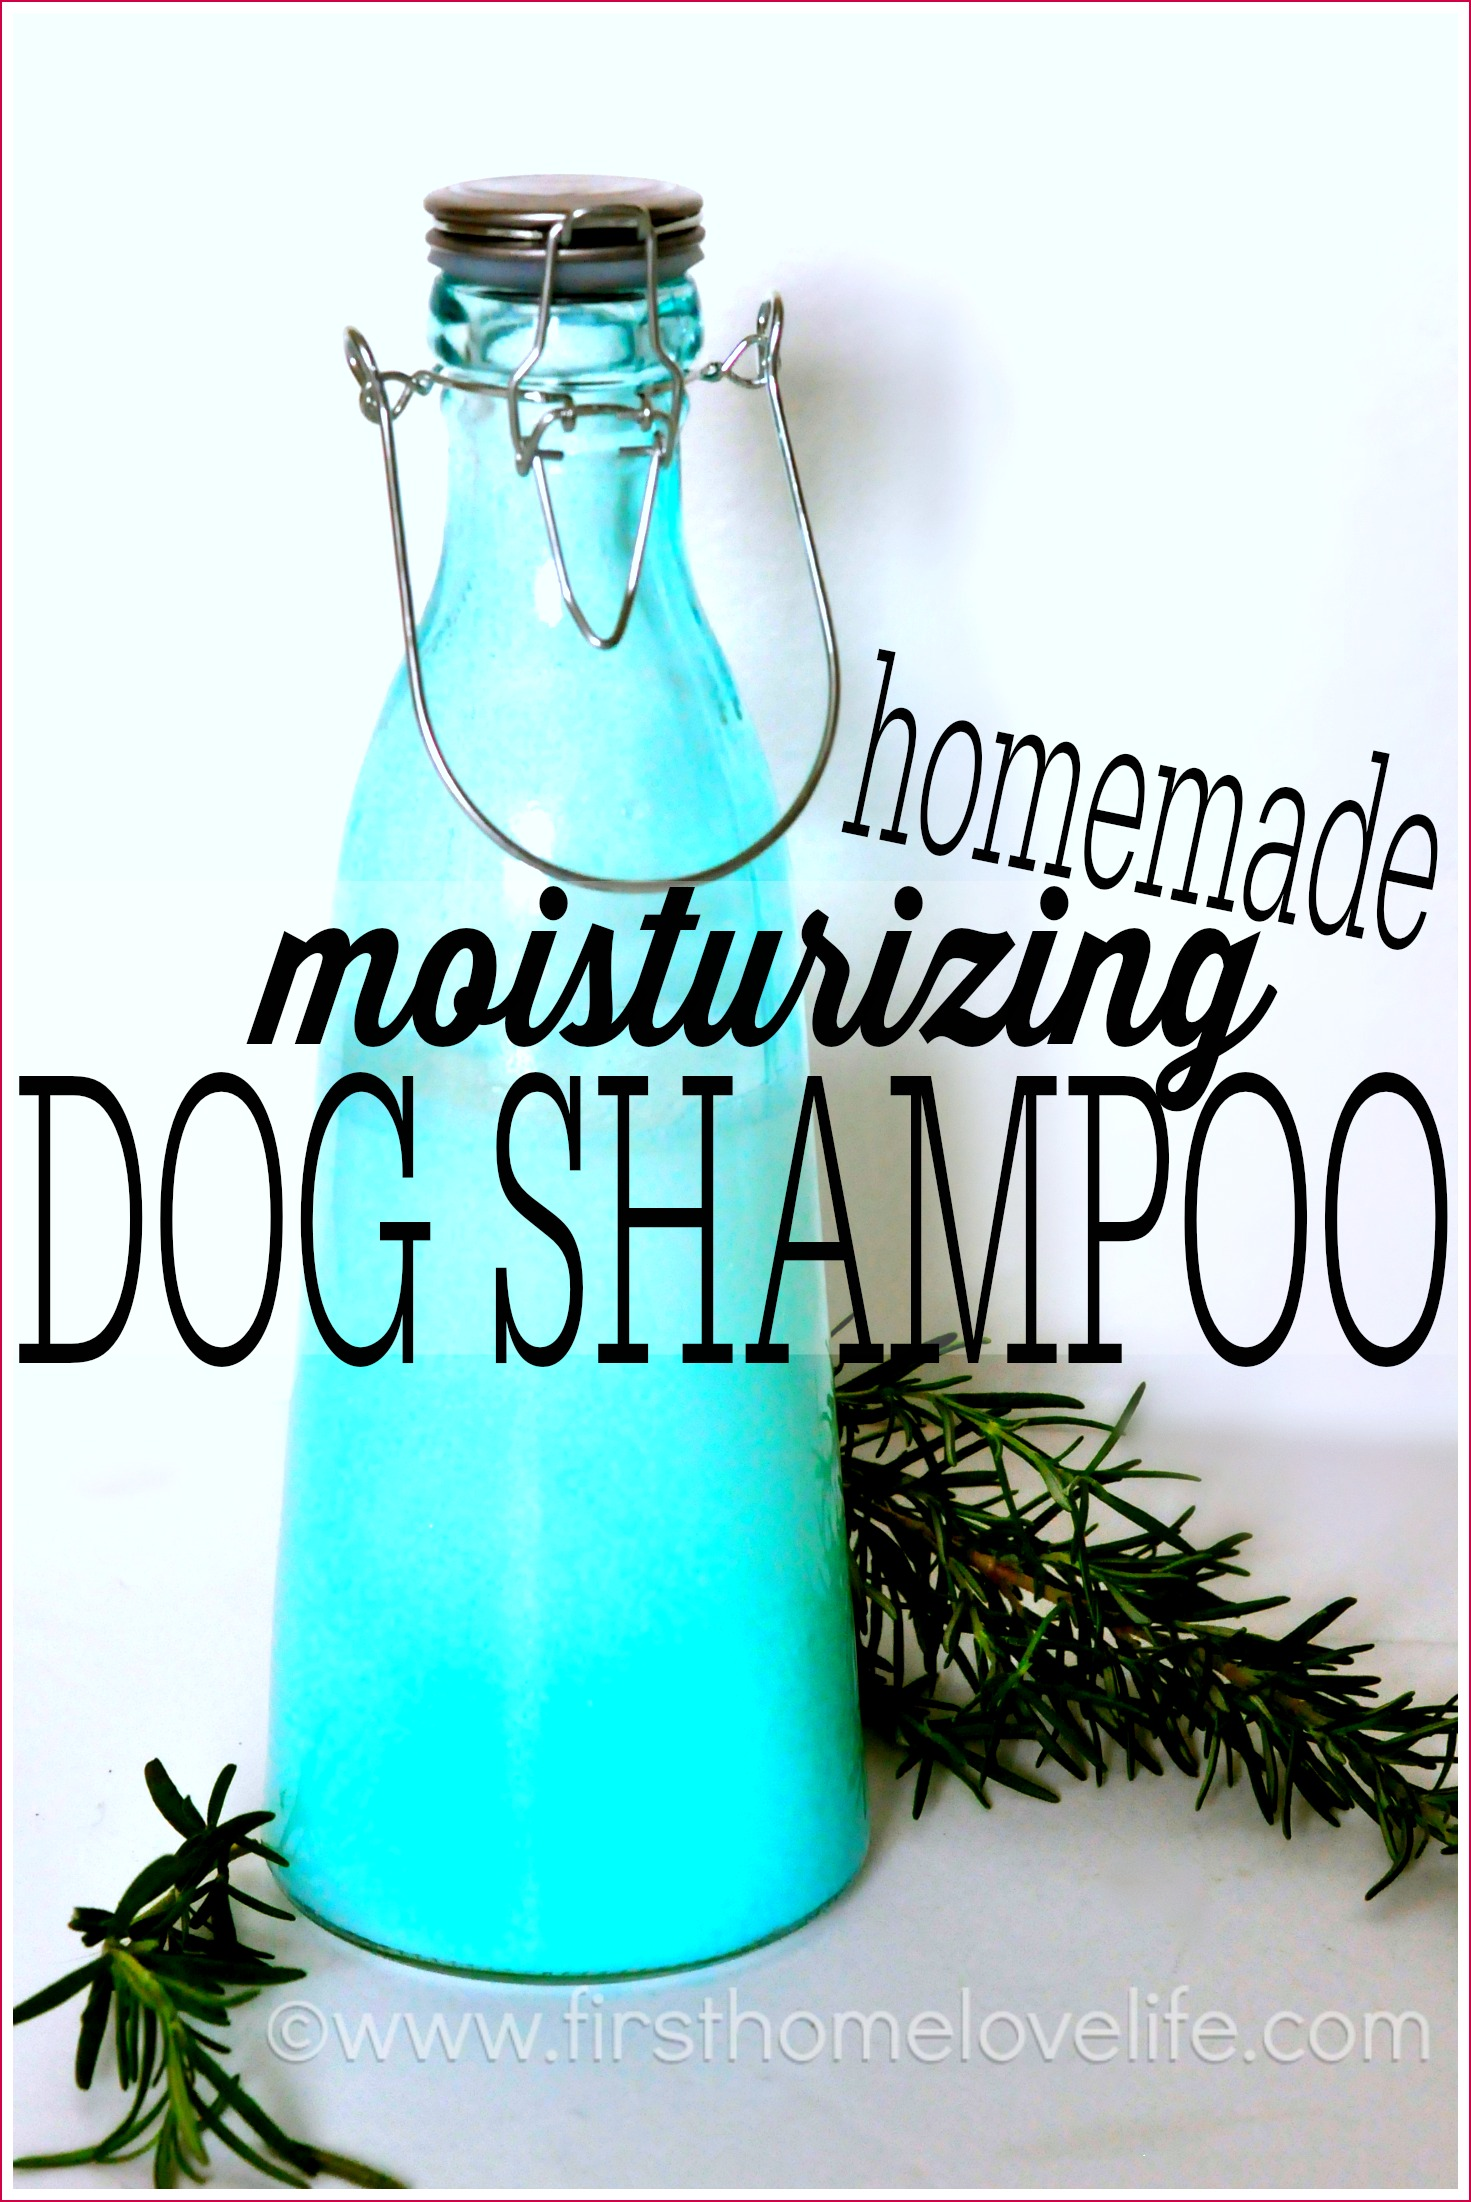 Homemade Dog Shampoo - First Home Love Life